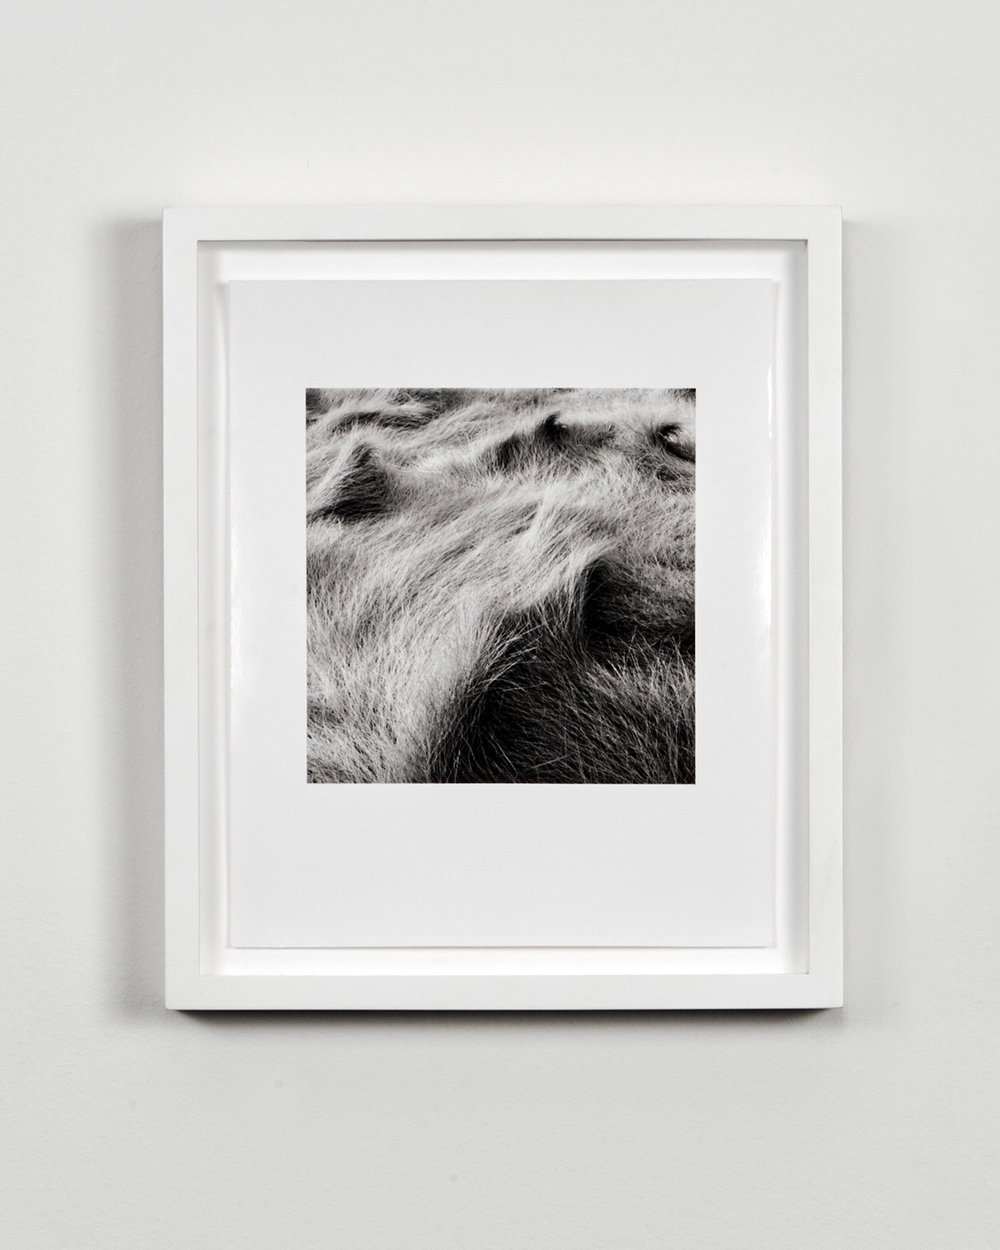 Eric Lindbloom silver gelatin photograph in lacquered white frame